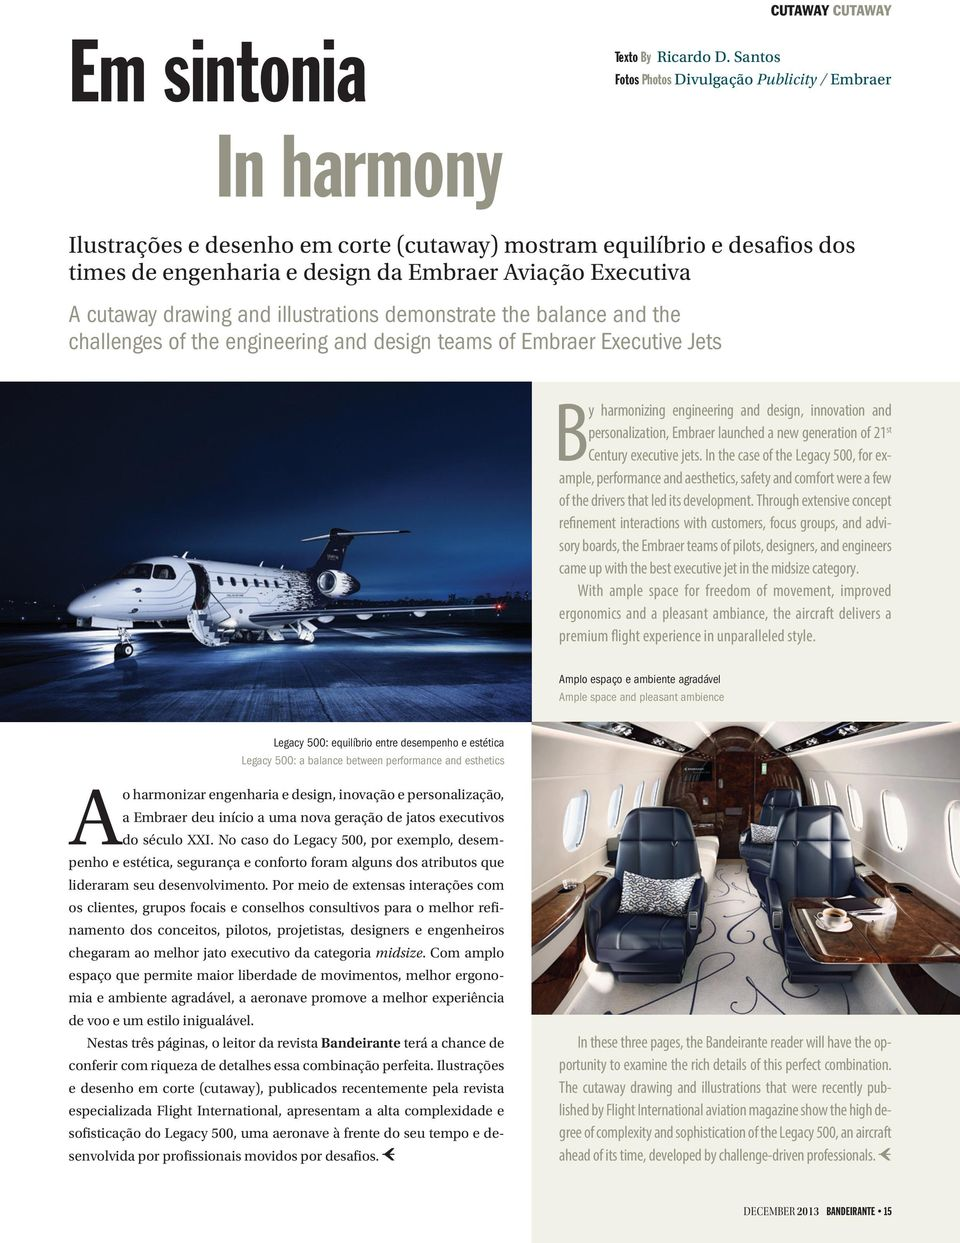 drawing and illustrations demonstrate the balance and the challenges of the engineering and design teams of Embraer Executive Jets By harmonizing engineering and design, innovation and